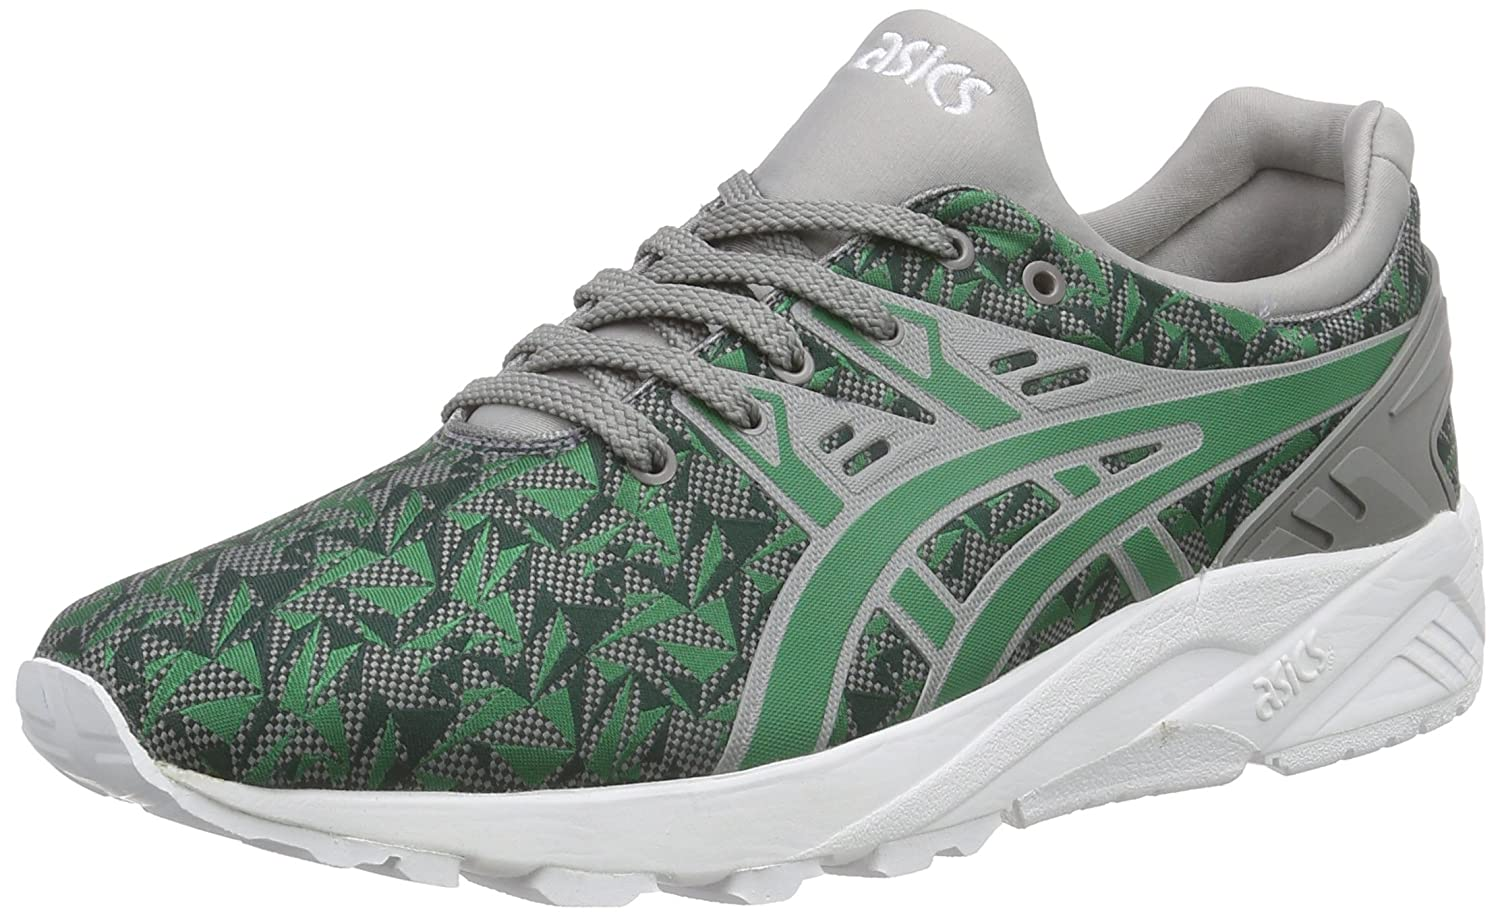 Asics - Gel-Kayano Trainer EVO, Zapatillas Unisex Adulto 40.5 EU|Verde (Green/Green 8484)